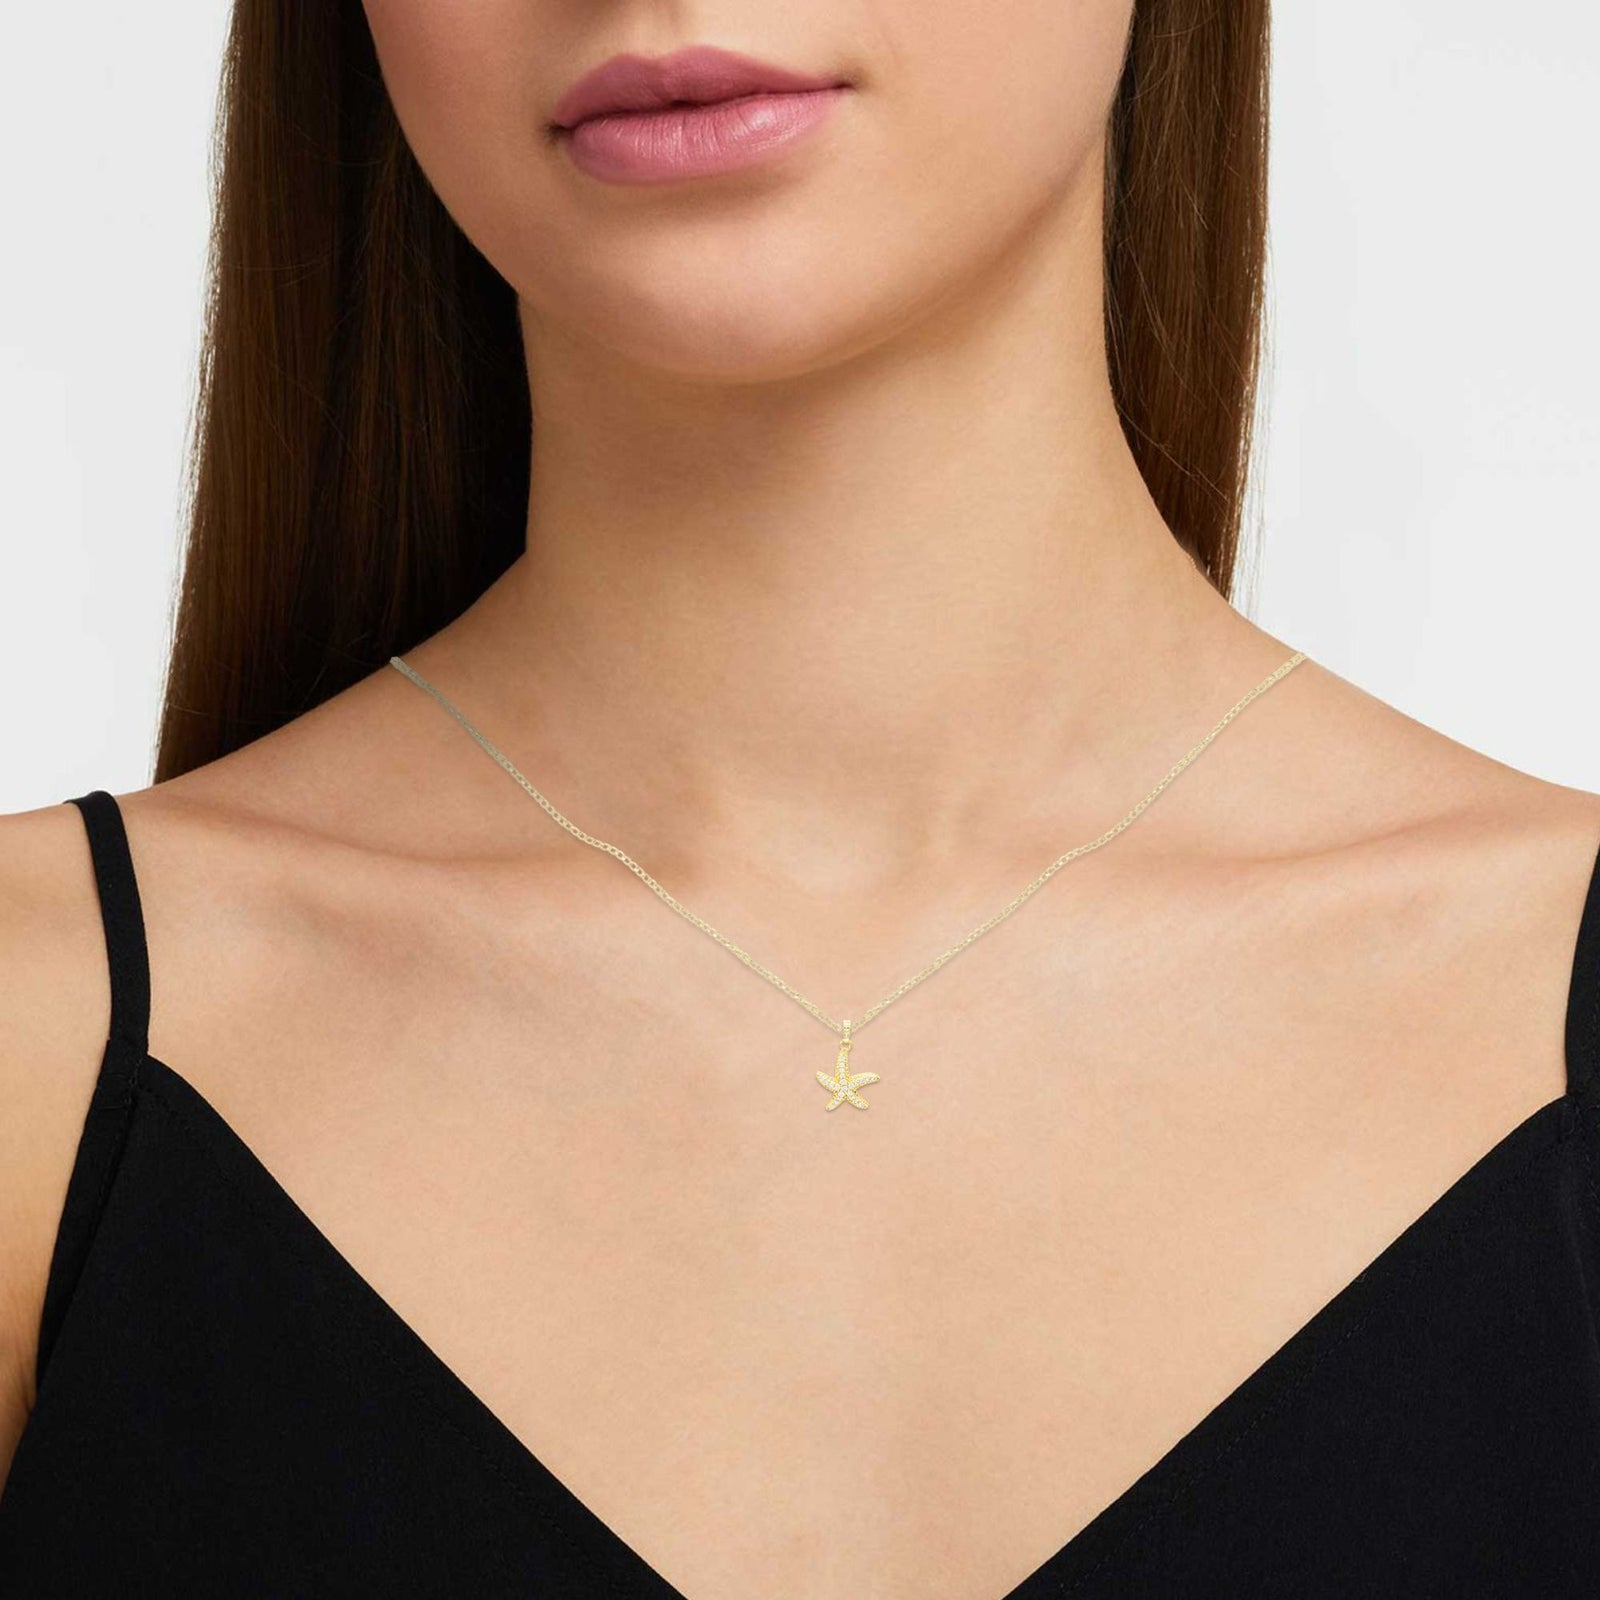 Starfish Cubic Zirconia Pendant With Necklace Set 14K Gold Filled